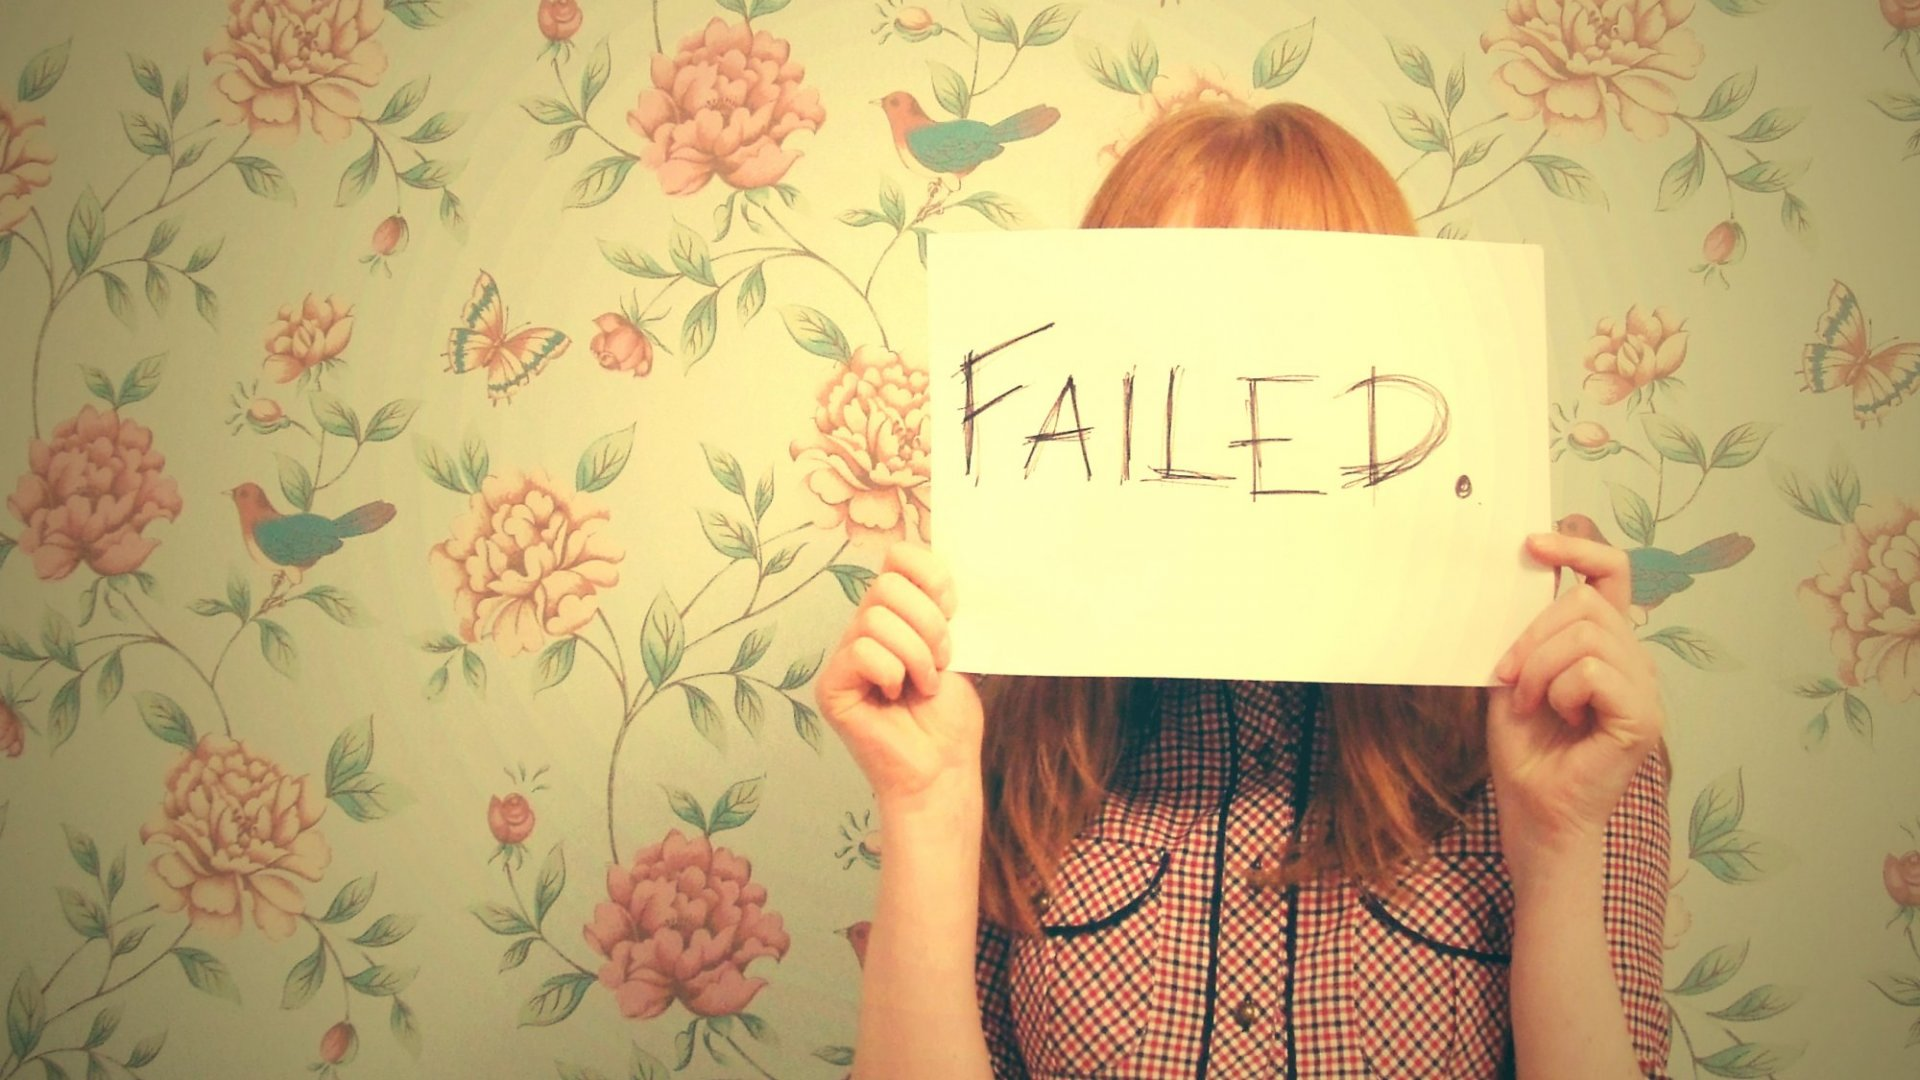 8 Effective Ways I've Coped With Failure in My Life